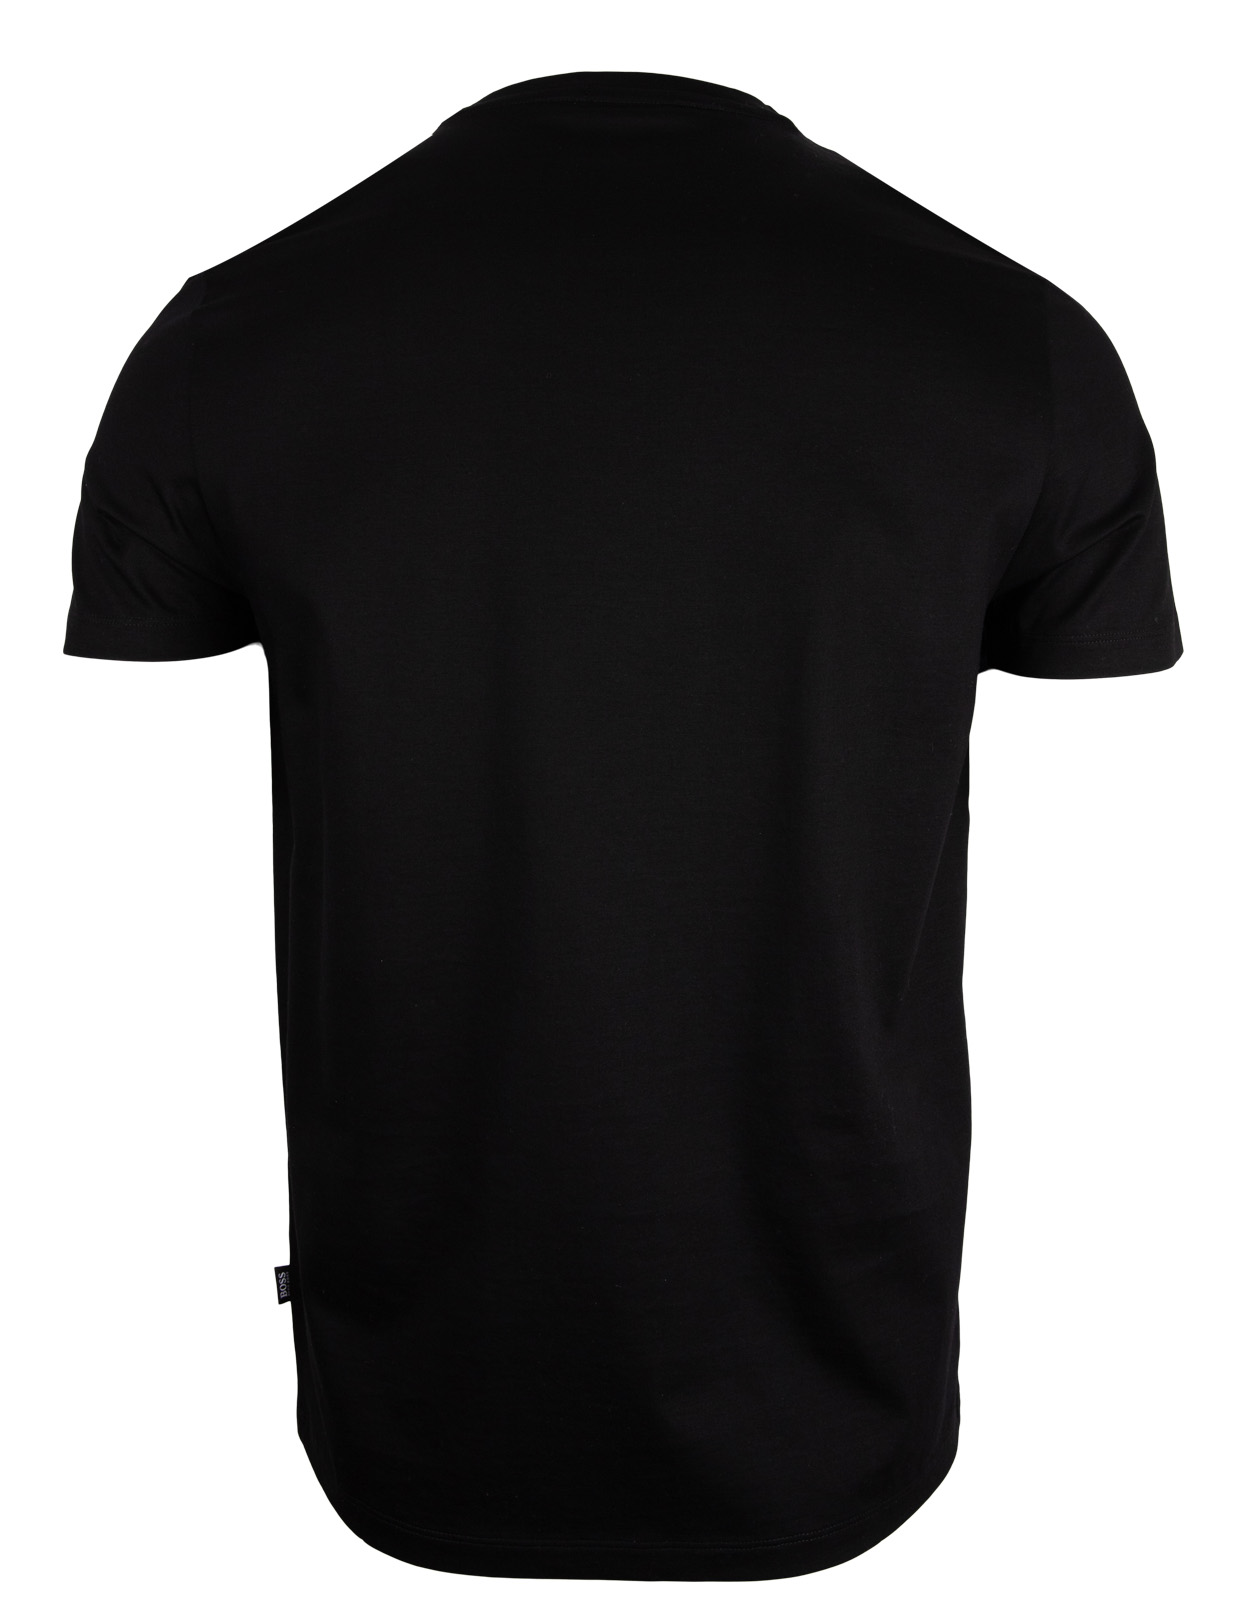 Tessler T-shirt Cotton Black